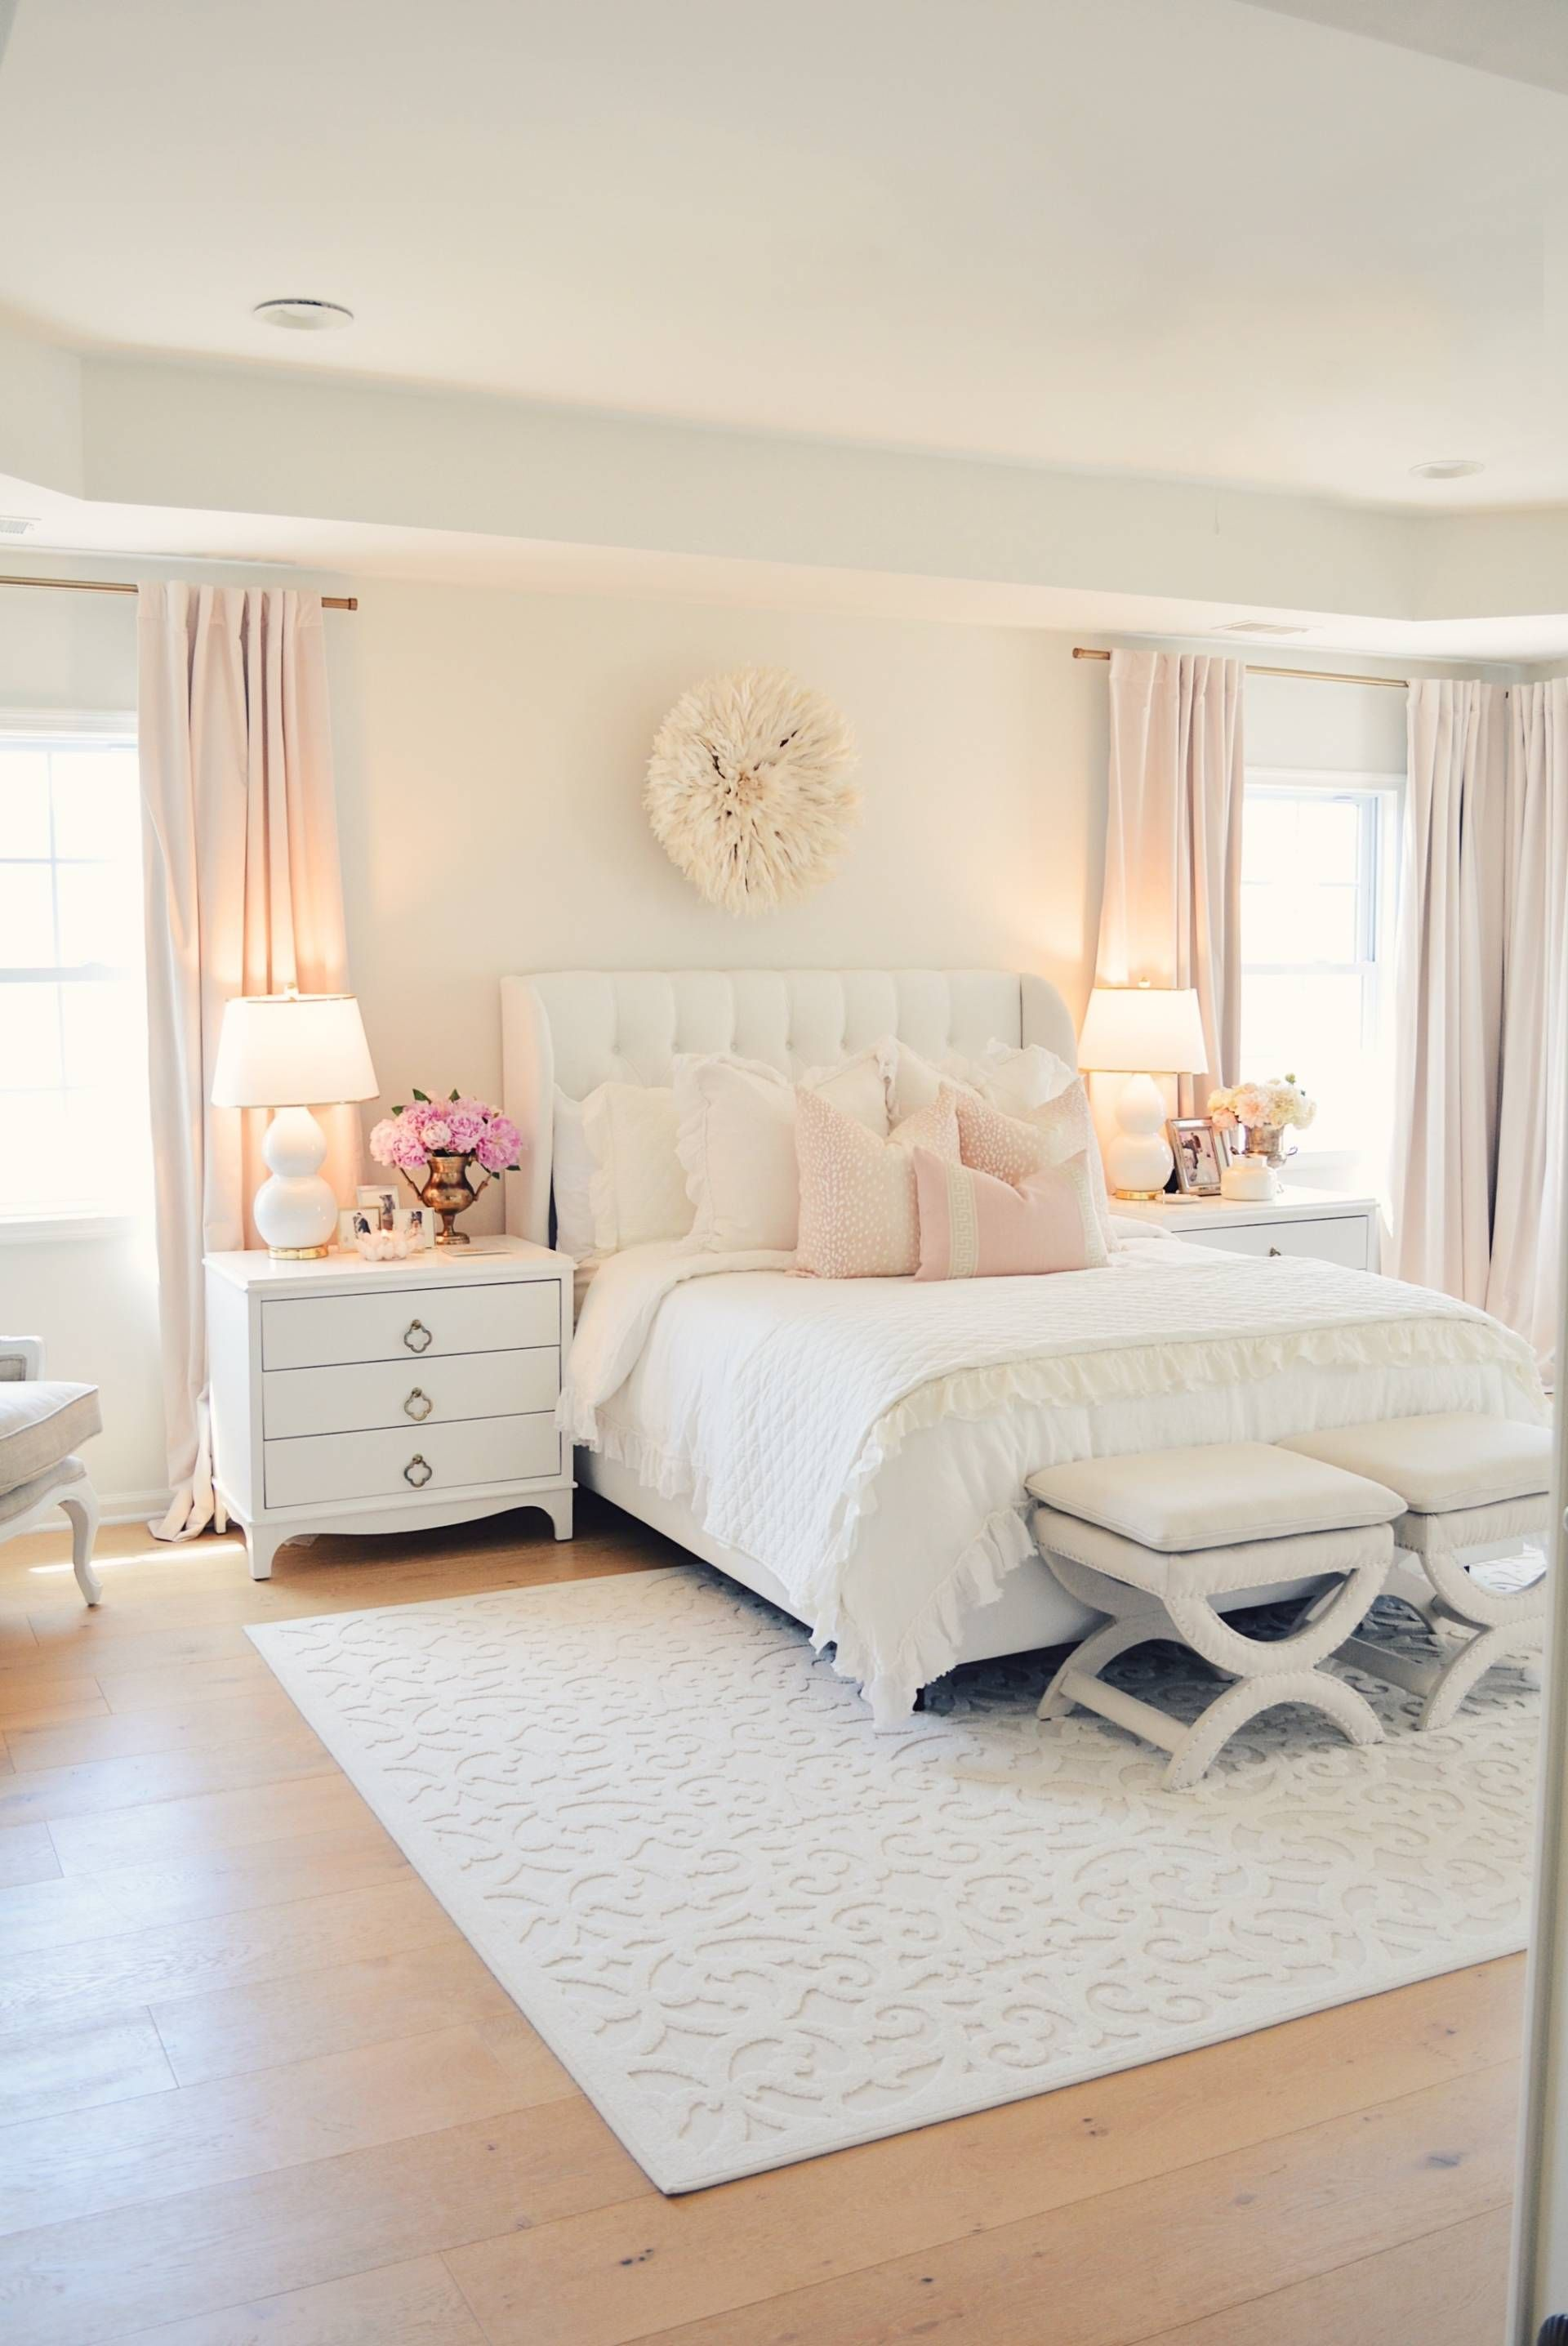 Elegant White Master Bedroom & Blush Decorative Pillows - The Pink Dream #girlsbedroom